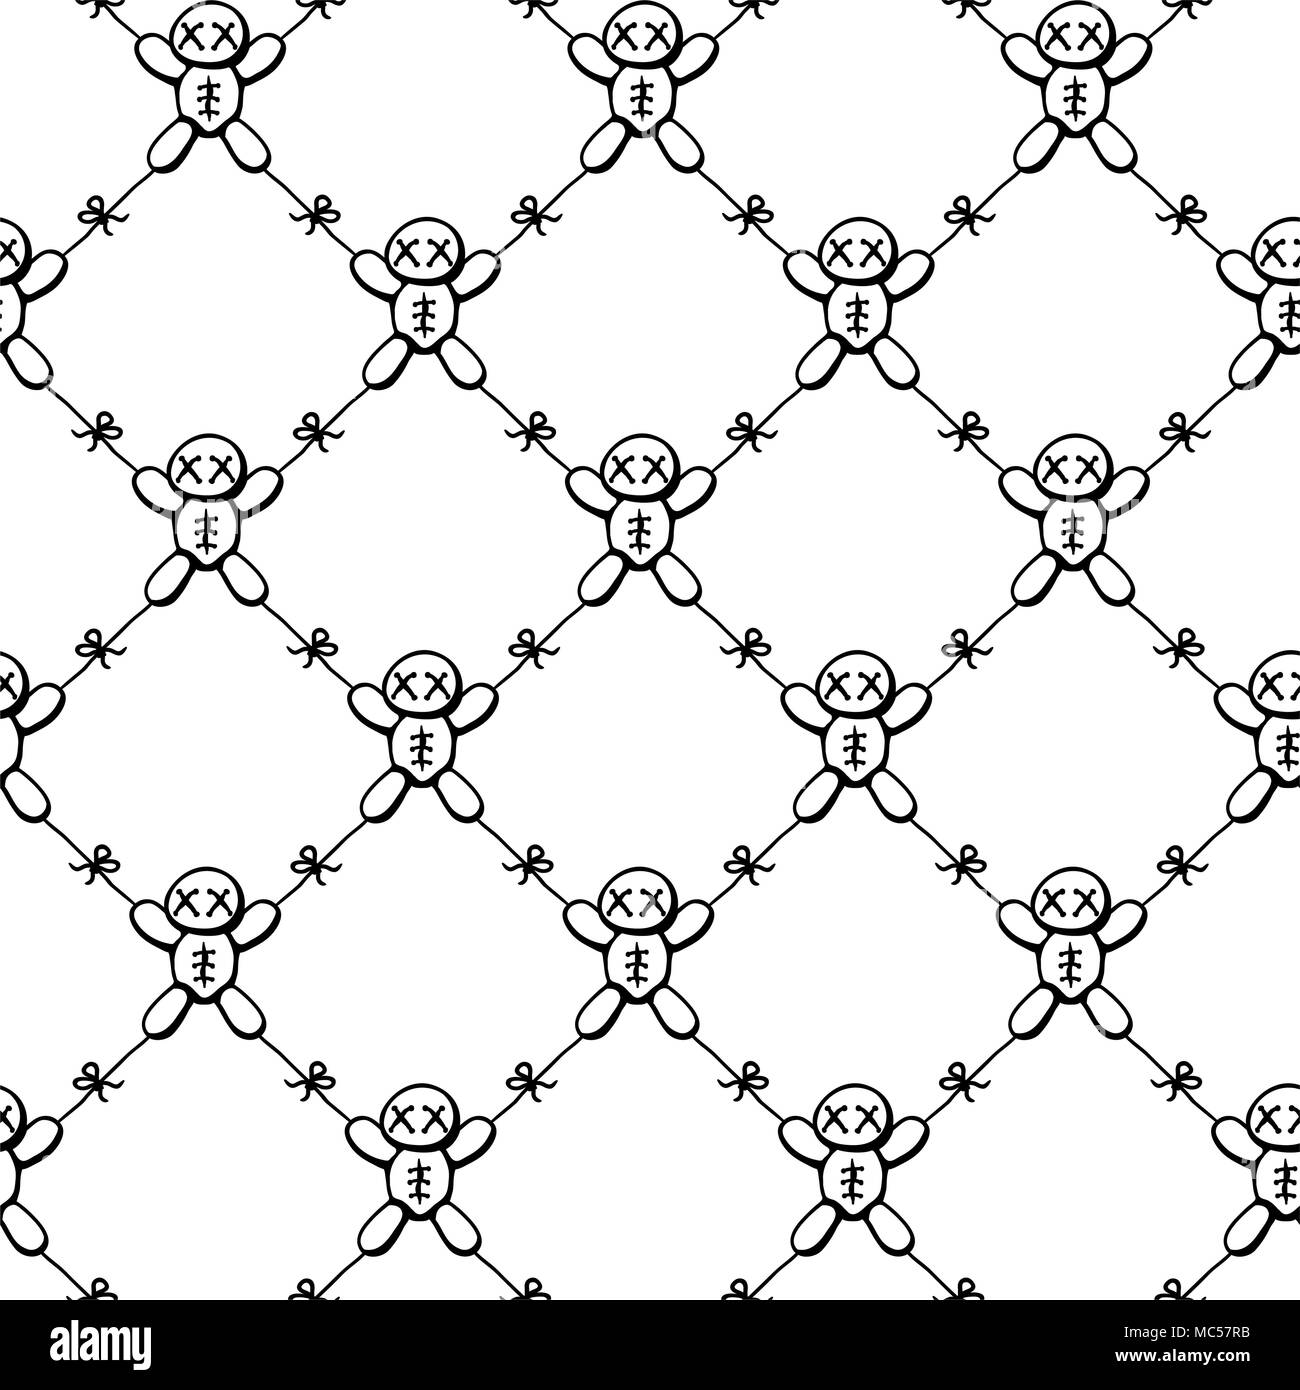 Voodoo dolls tied together restricted movement net, seamless texture pattern, vector illustration, square, over white - Stock Vector